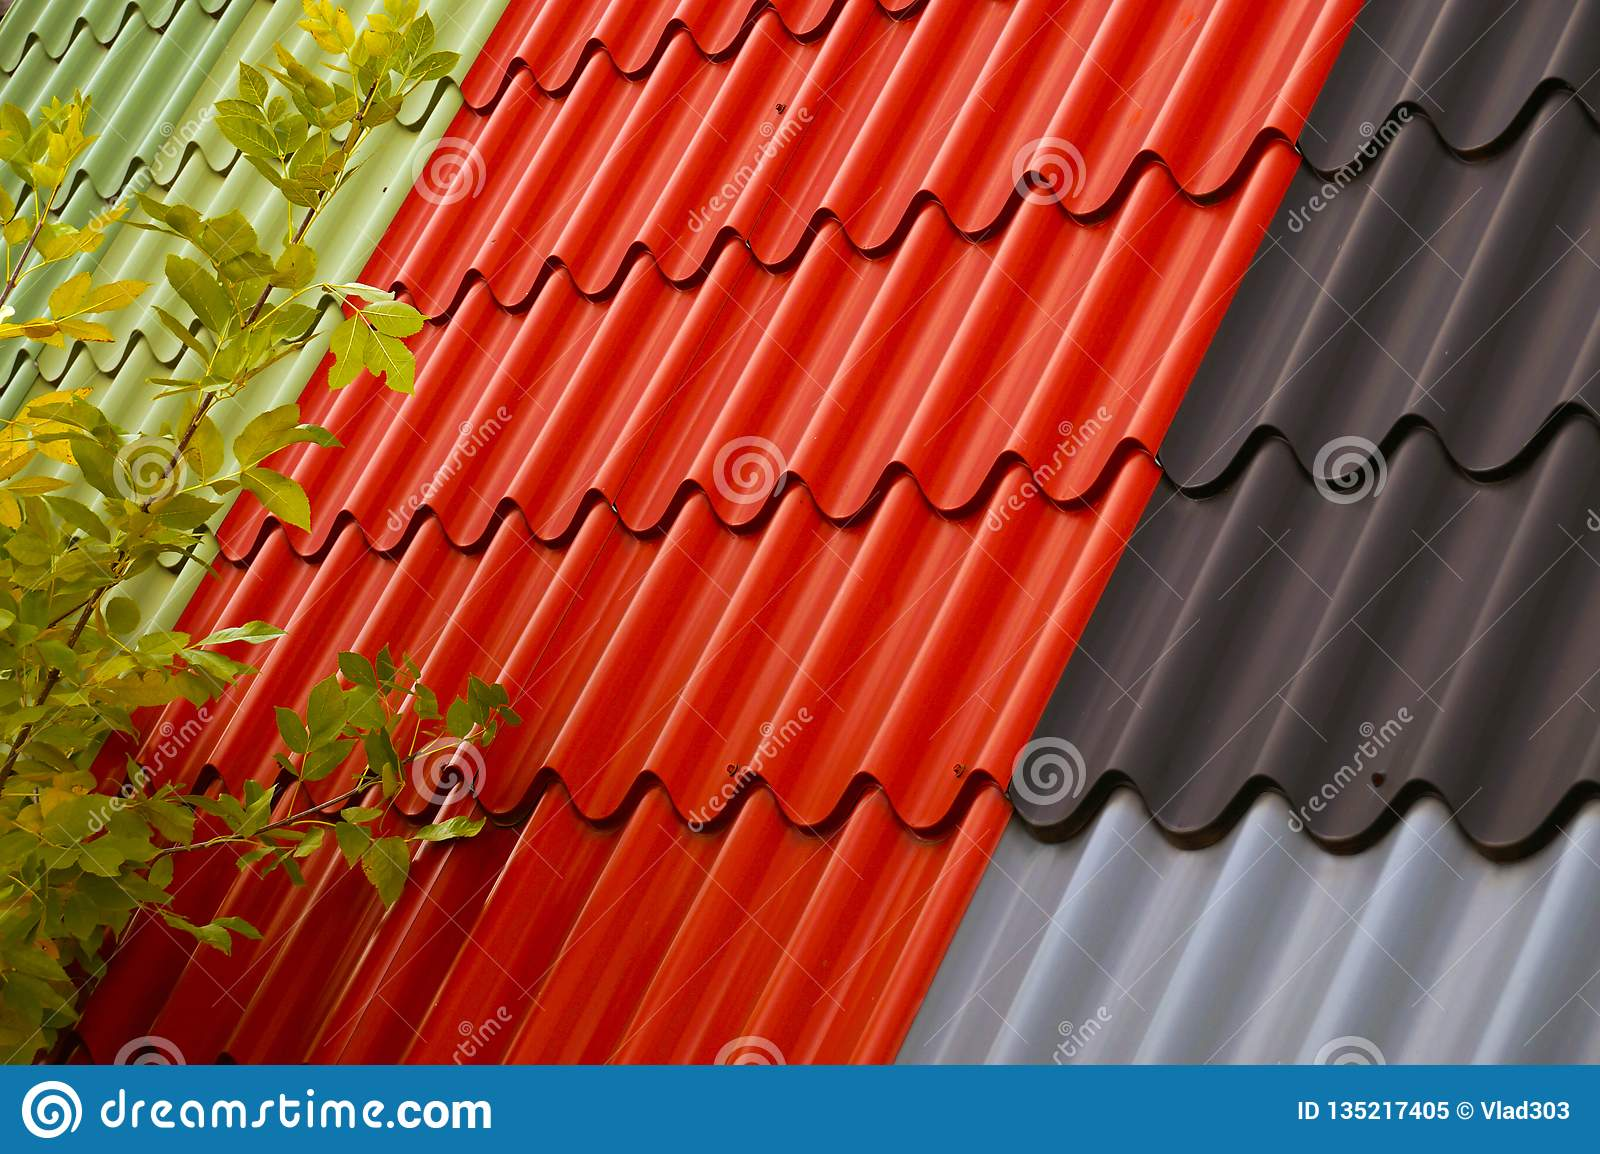 A Metal Lightweight Roofing And Walling Profile In Several Colors